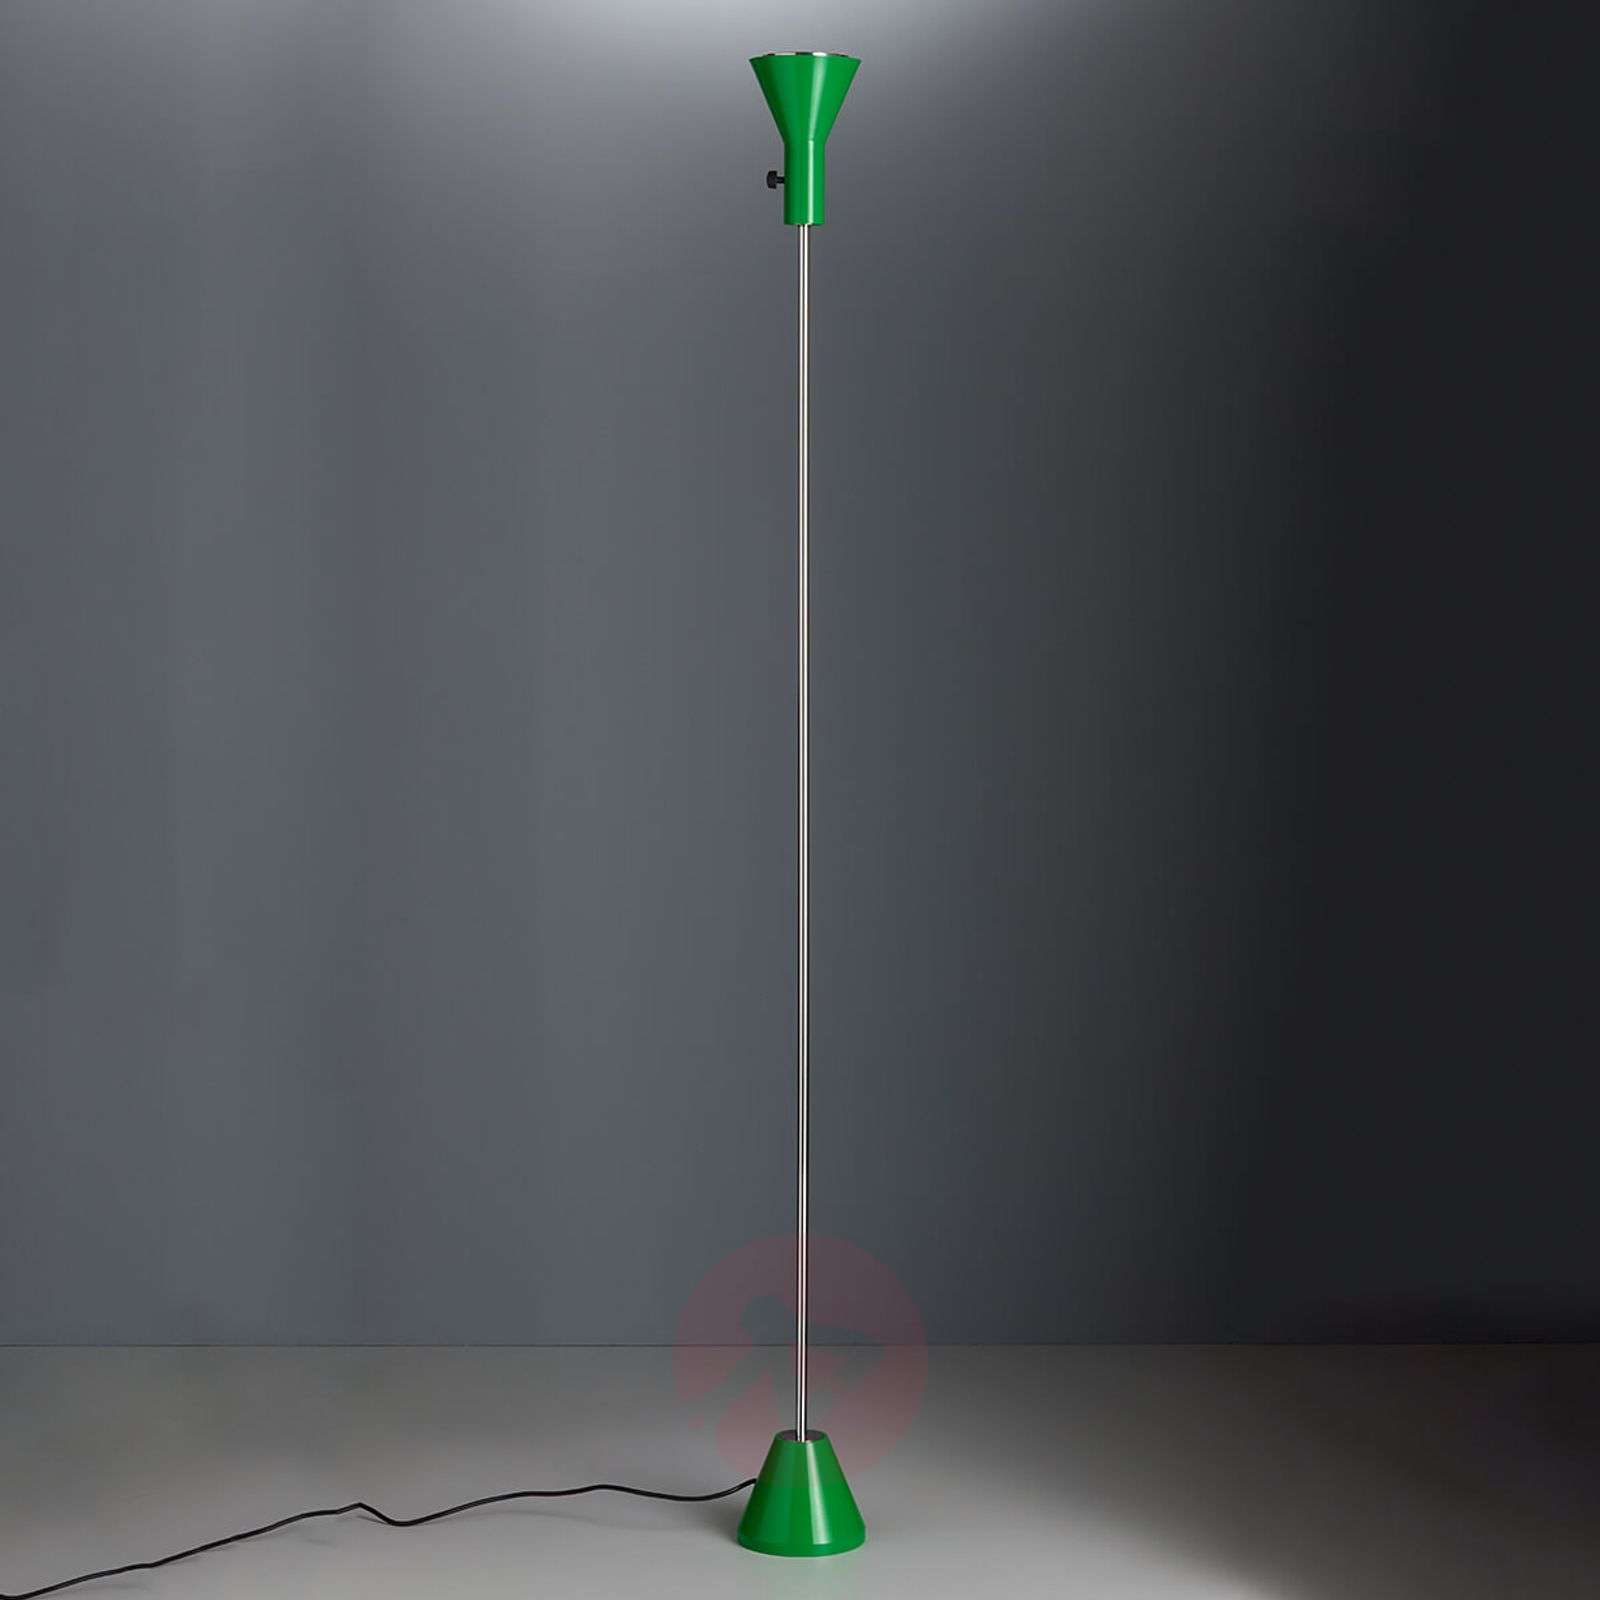 Green LED floor lamp Gru, dimmable-9030222-01